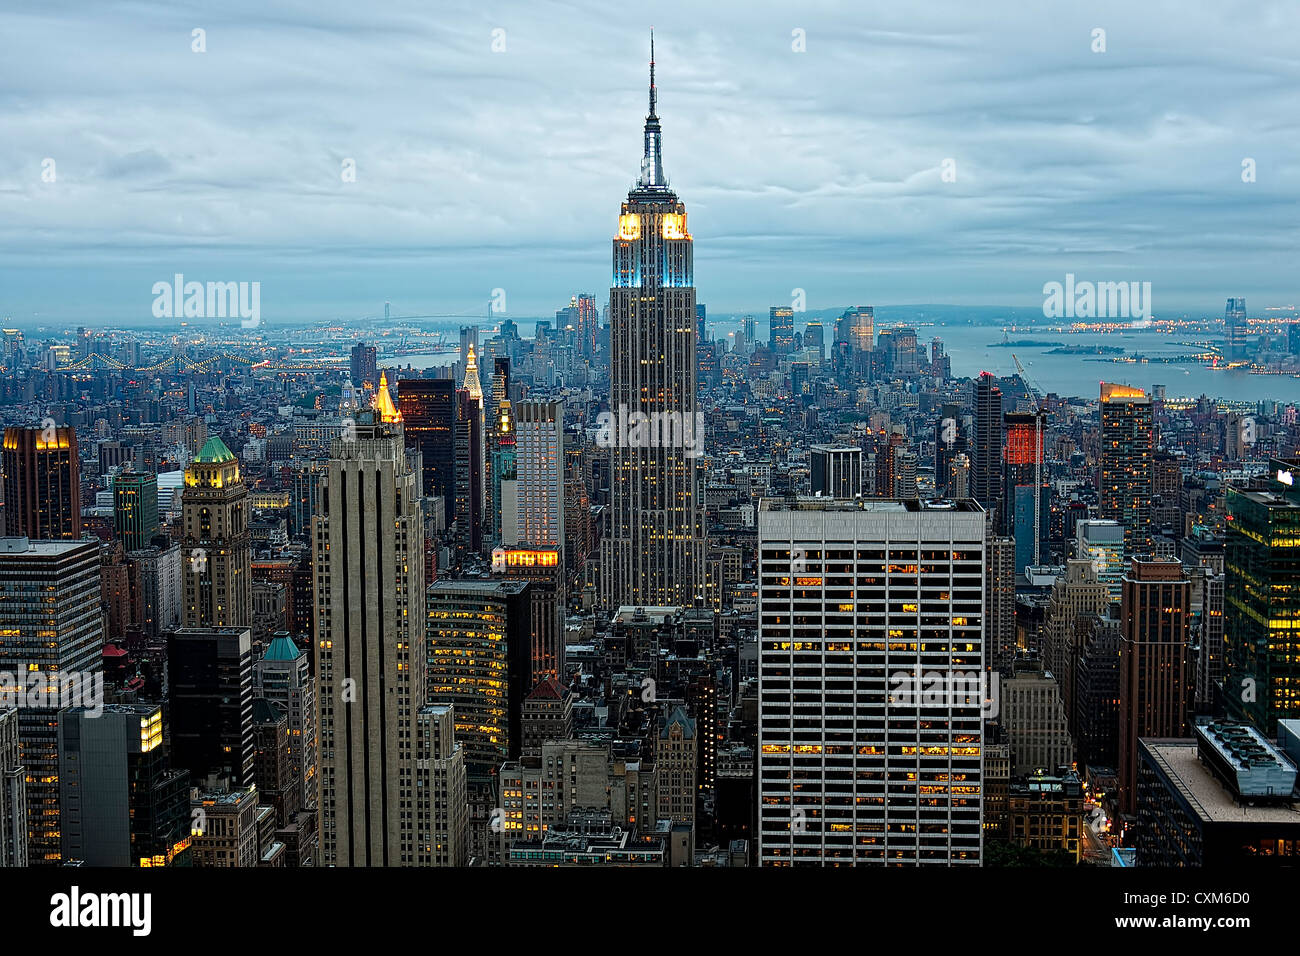 New York City skyline centered on the Empire State Building - Stock Image